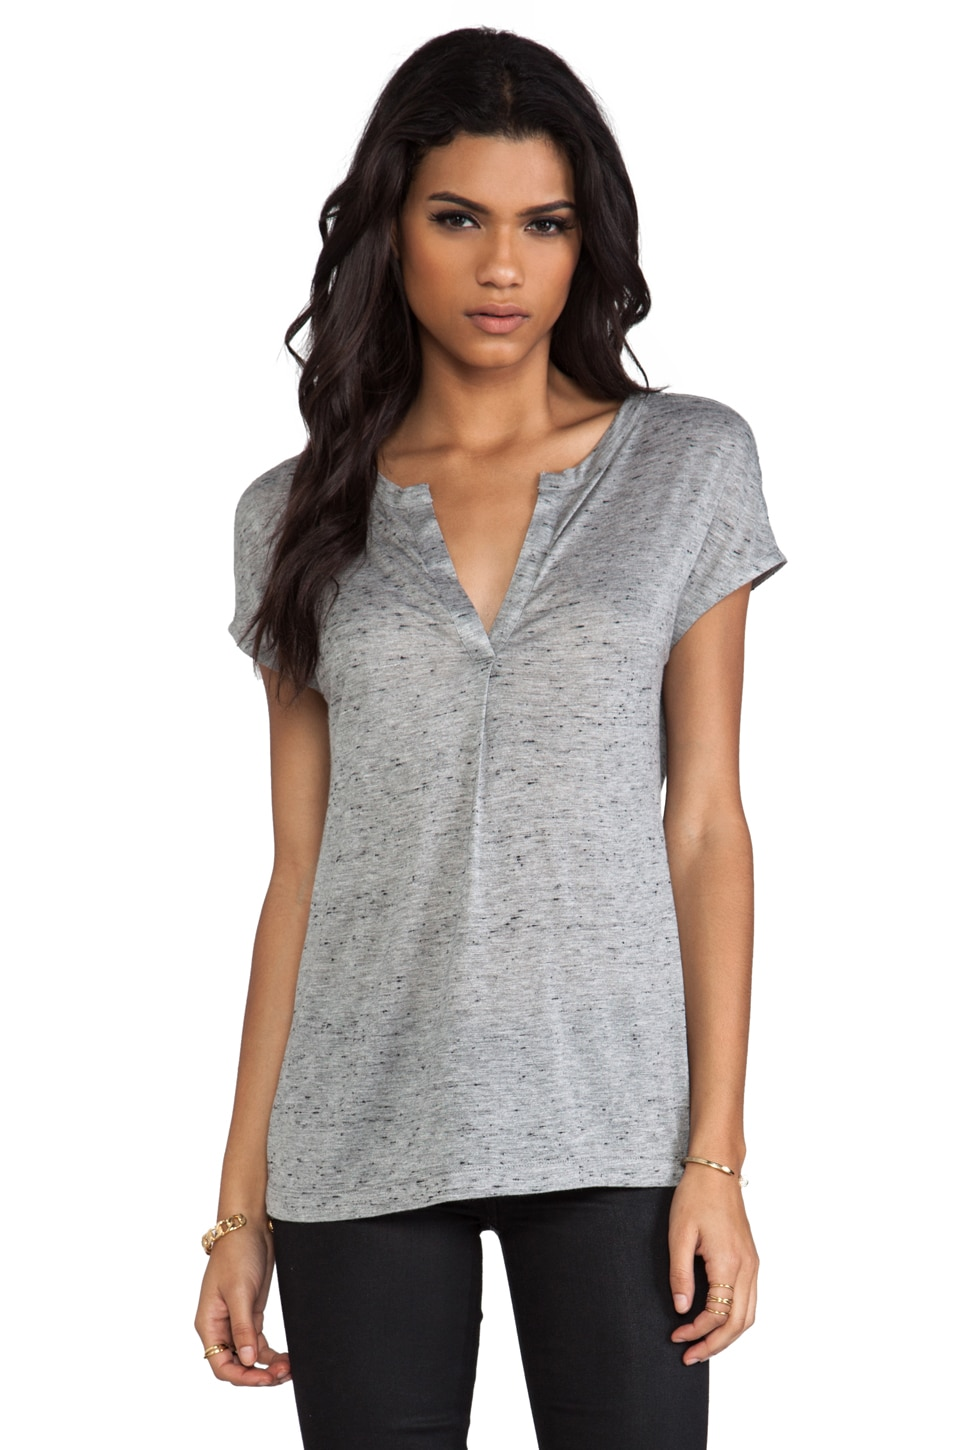 Marc by Marc Jacobs Alicia Jersey Top in Dapper Grey Melange